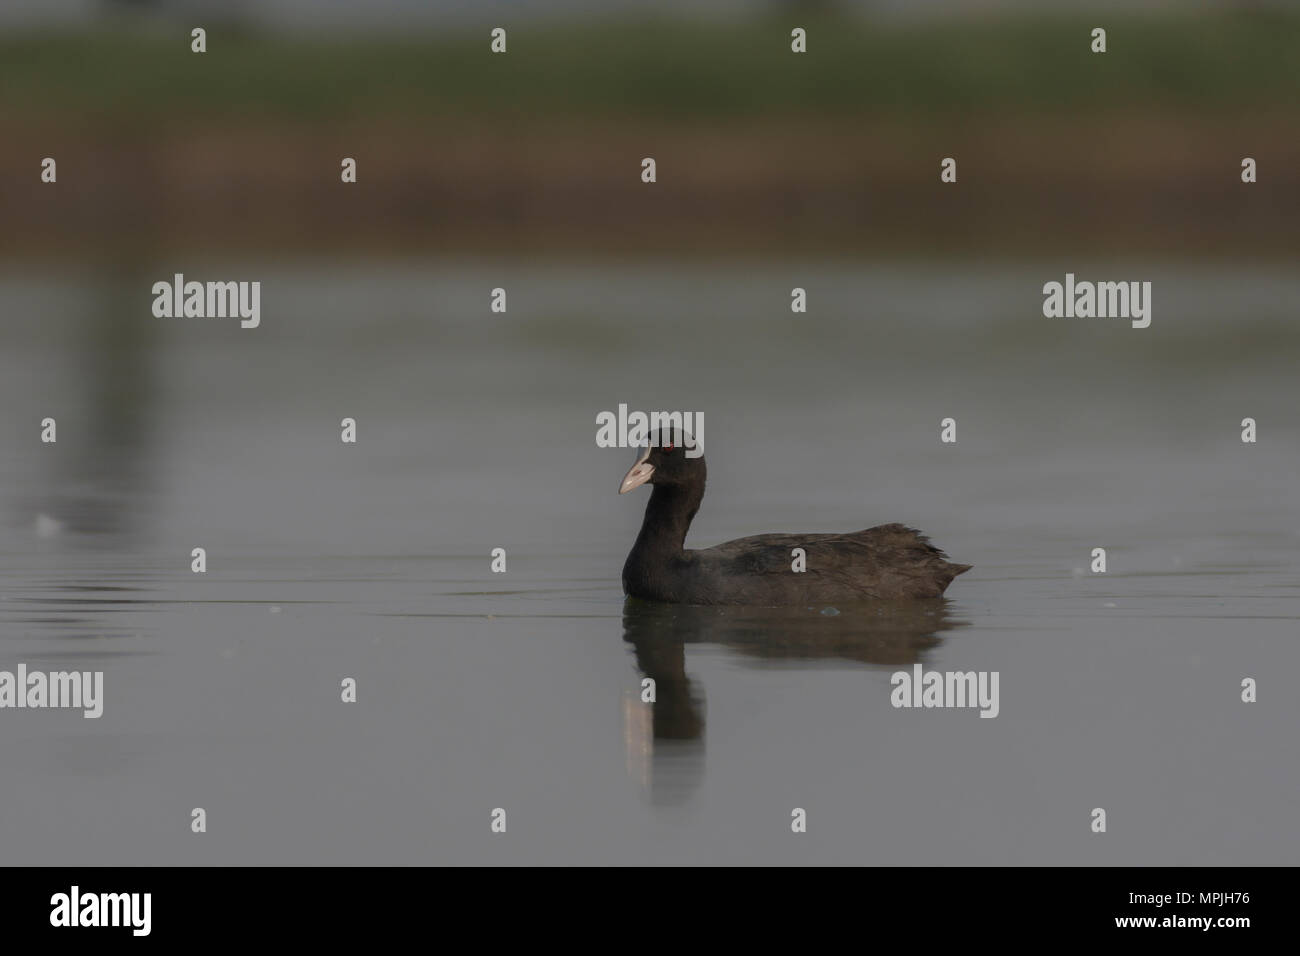 Common Coot or Eurasian Coot (Fulica atra) Swimming In Lake. - Stock Image